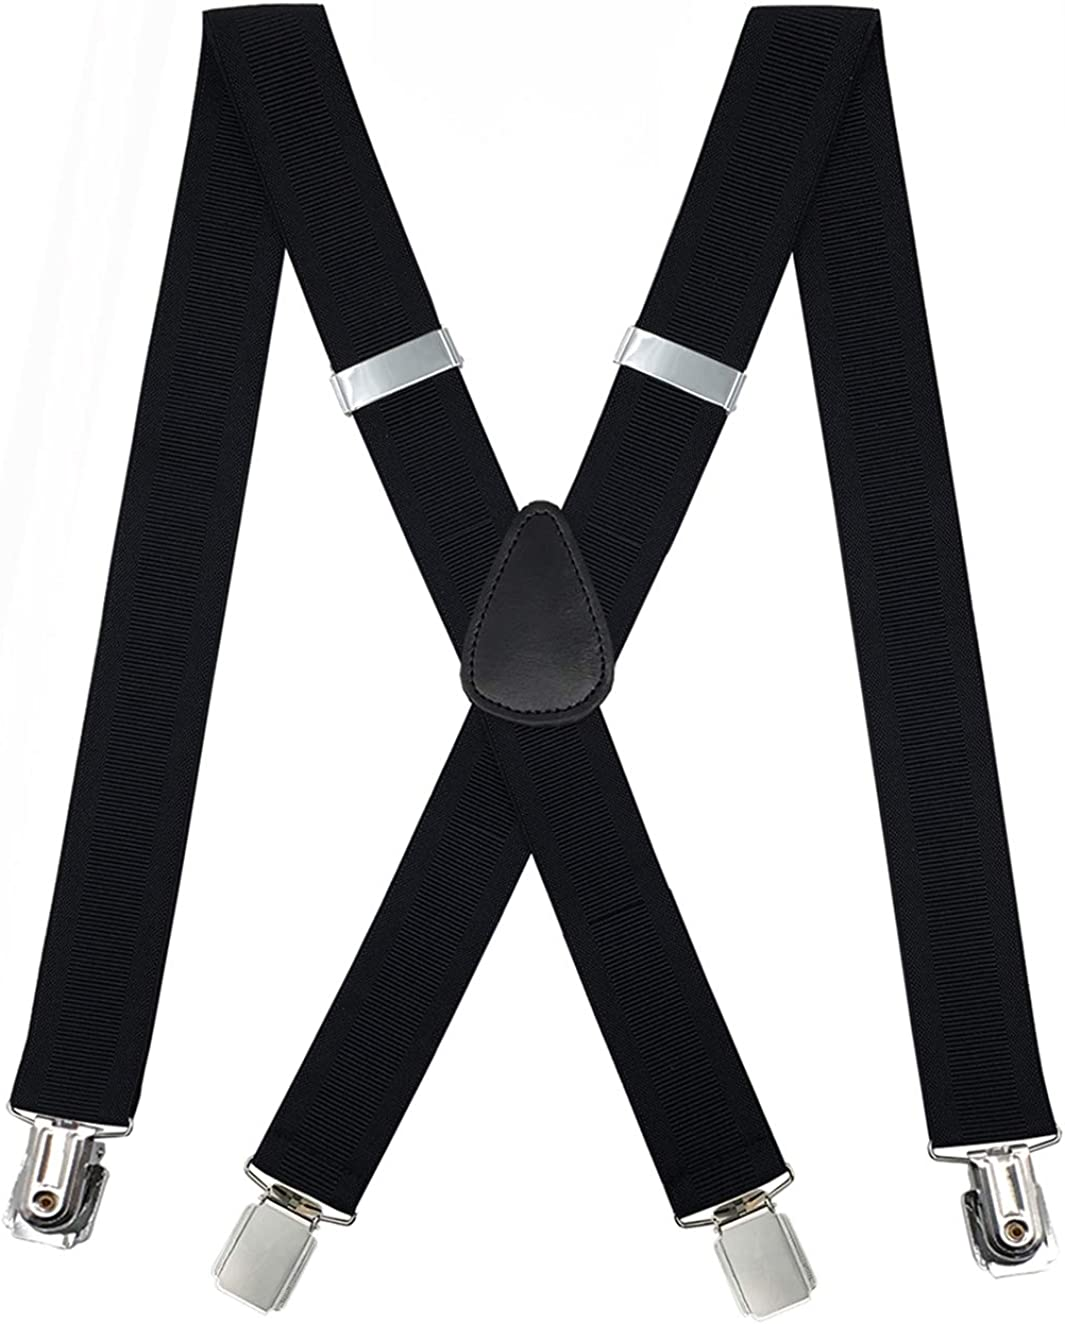 METUUTER Suspenders for Men – Heavy Duty Strong Clips Adjustable Elastic X Back Braces Big and Tall Men's Suspenders